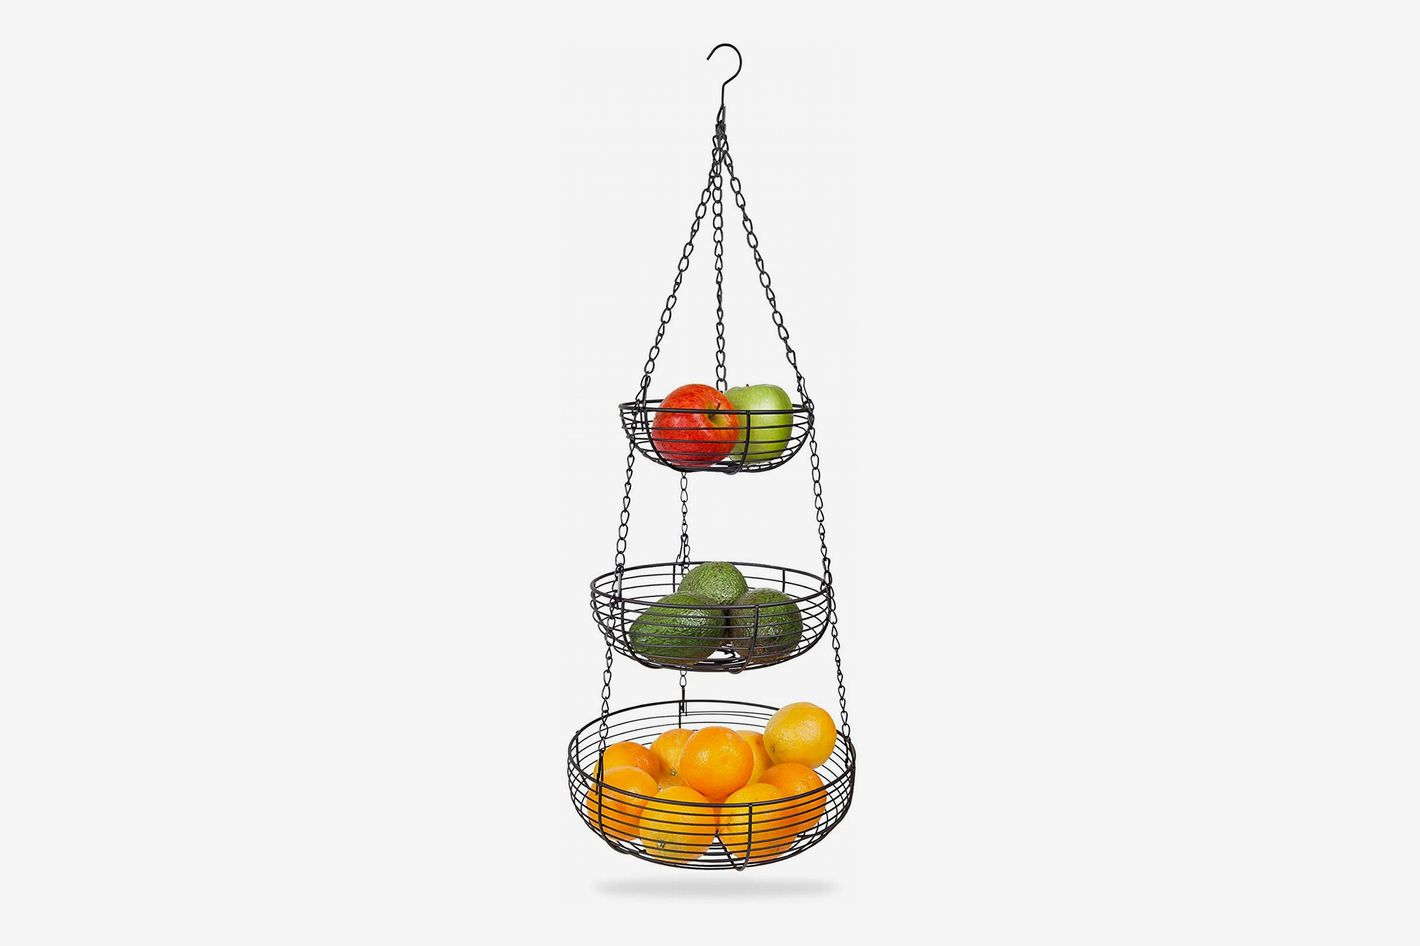 Home Intuition 3-Tier Hanging Basket Heavy Duty Wire